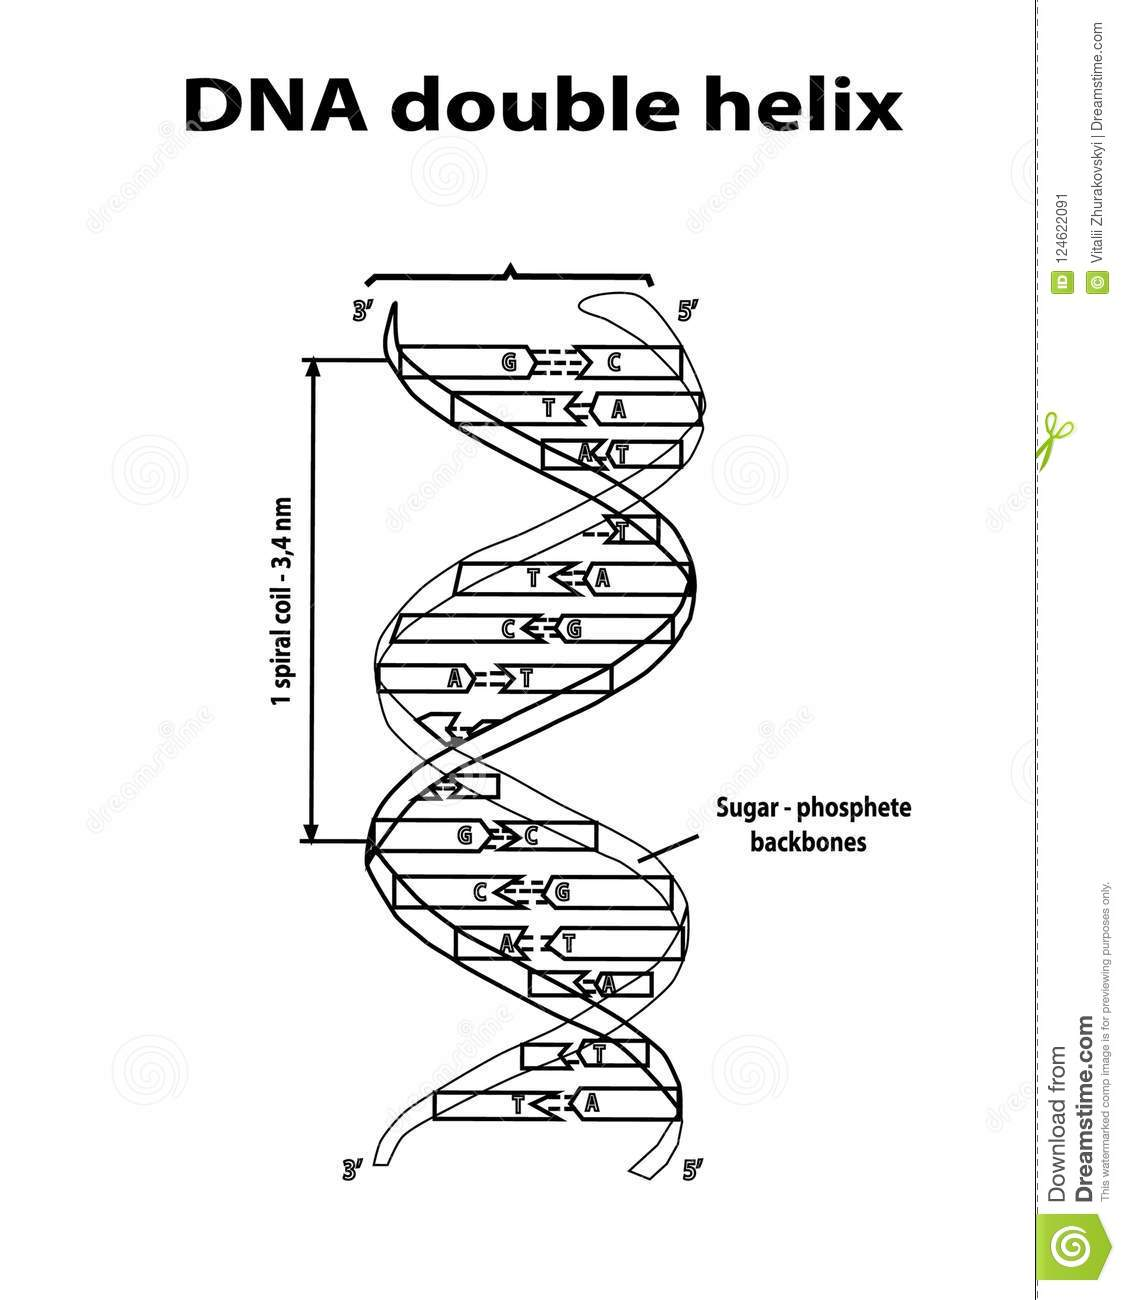 Dna Structure Double Helix In Black Lines On White Background Nucleotide Phosphate Sugar And